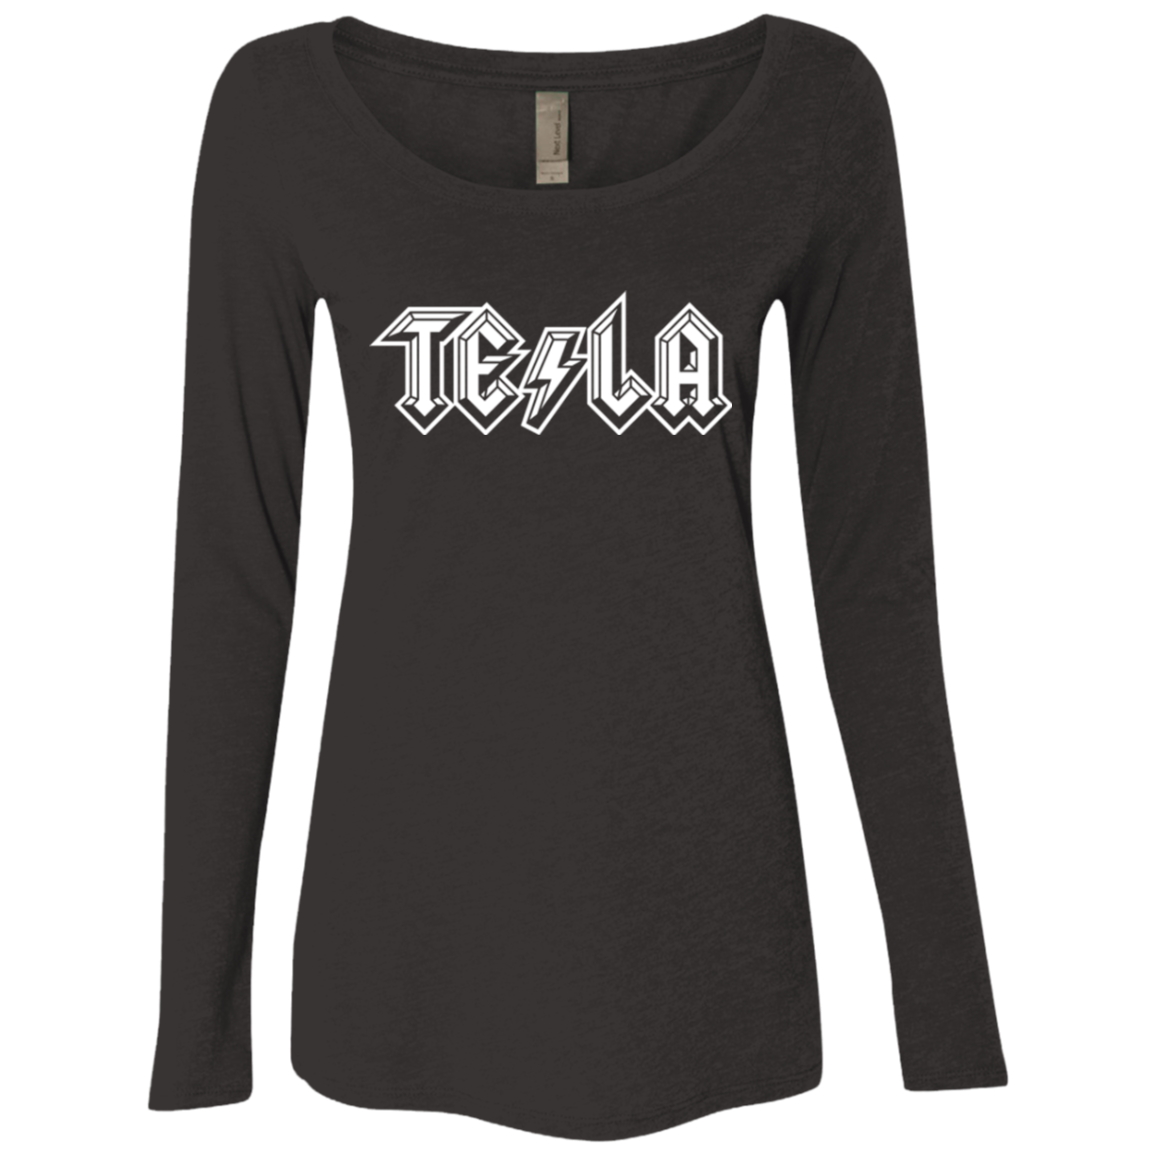 TESLA Women's Triblend Long Sleeve Shirt